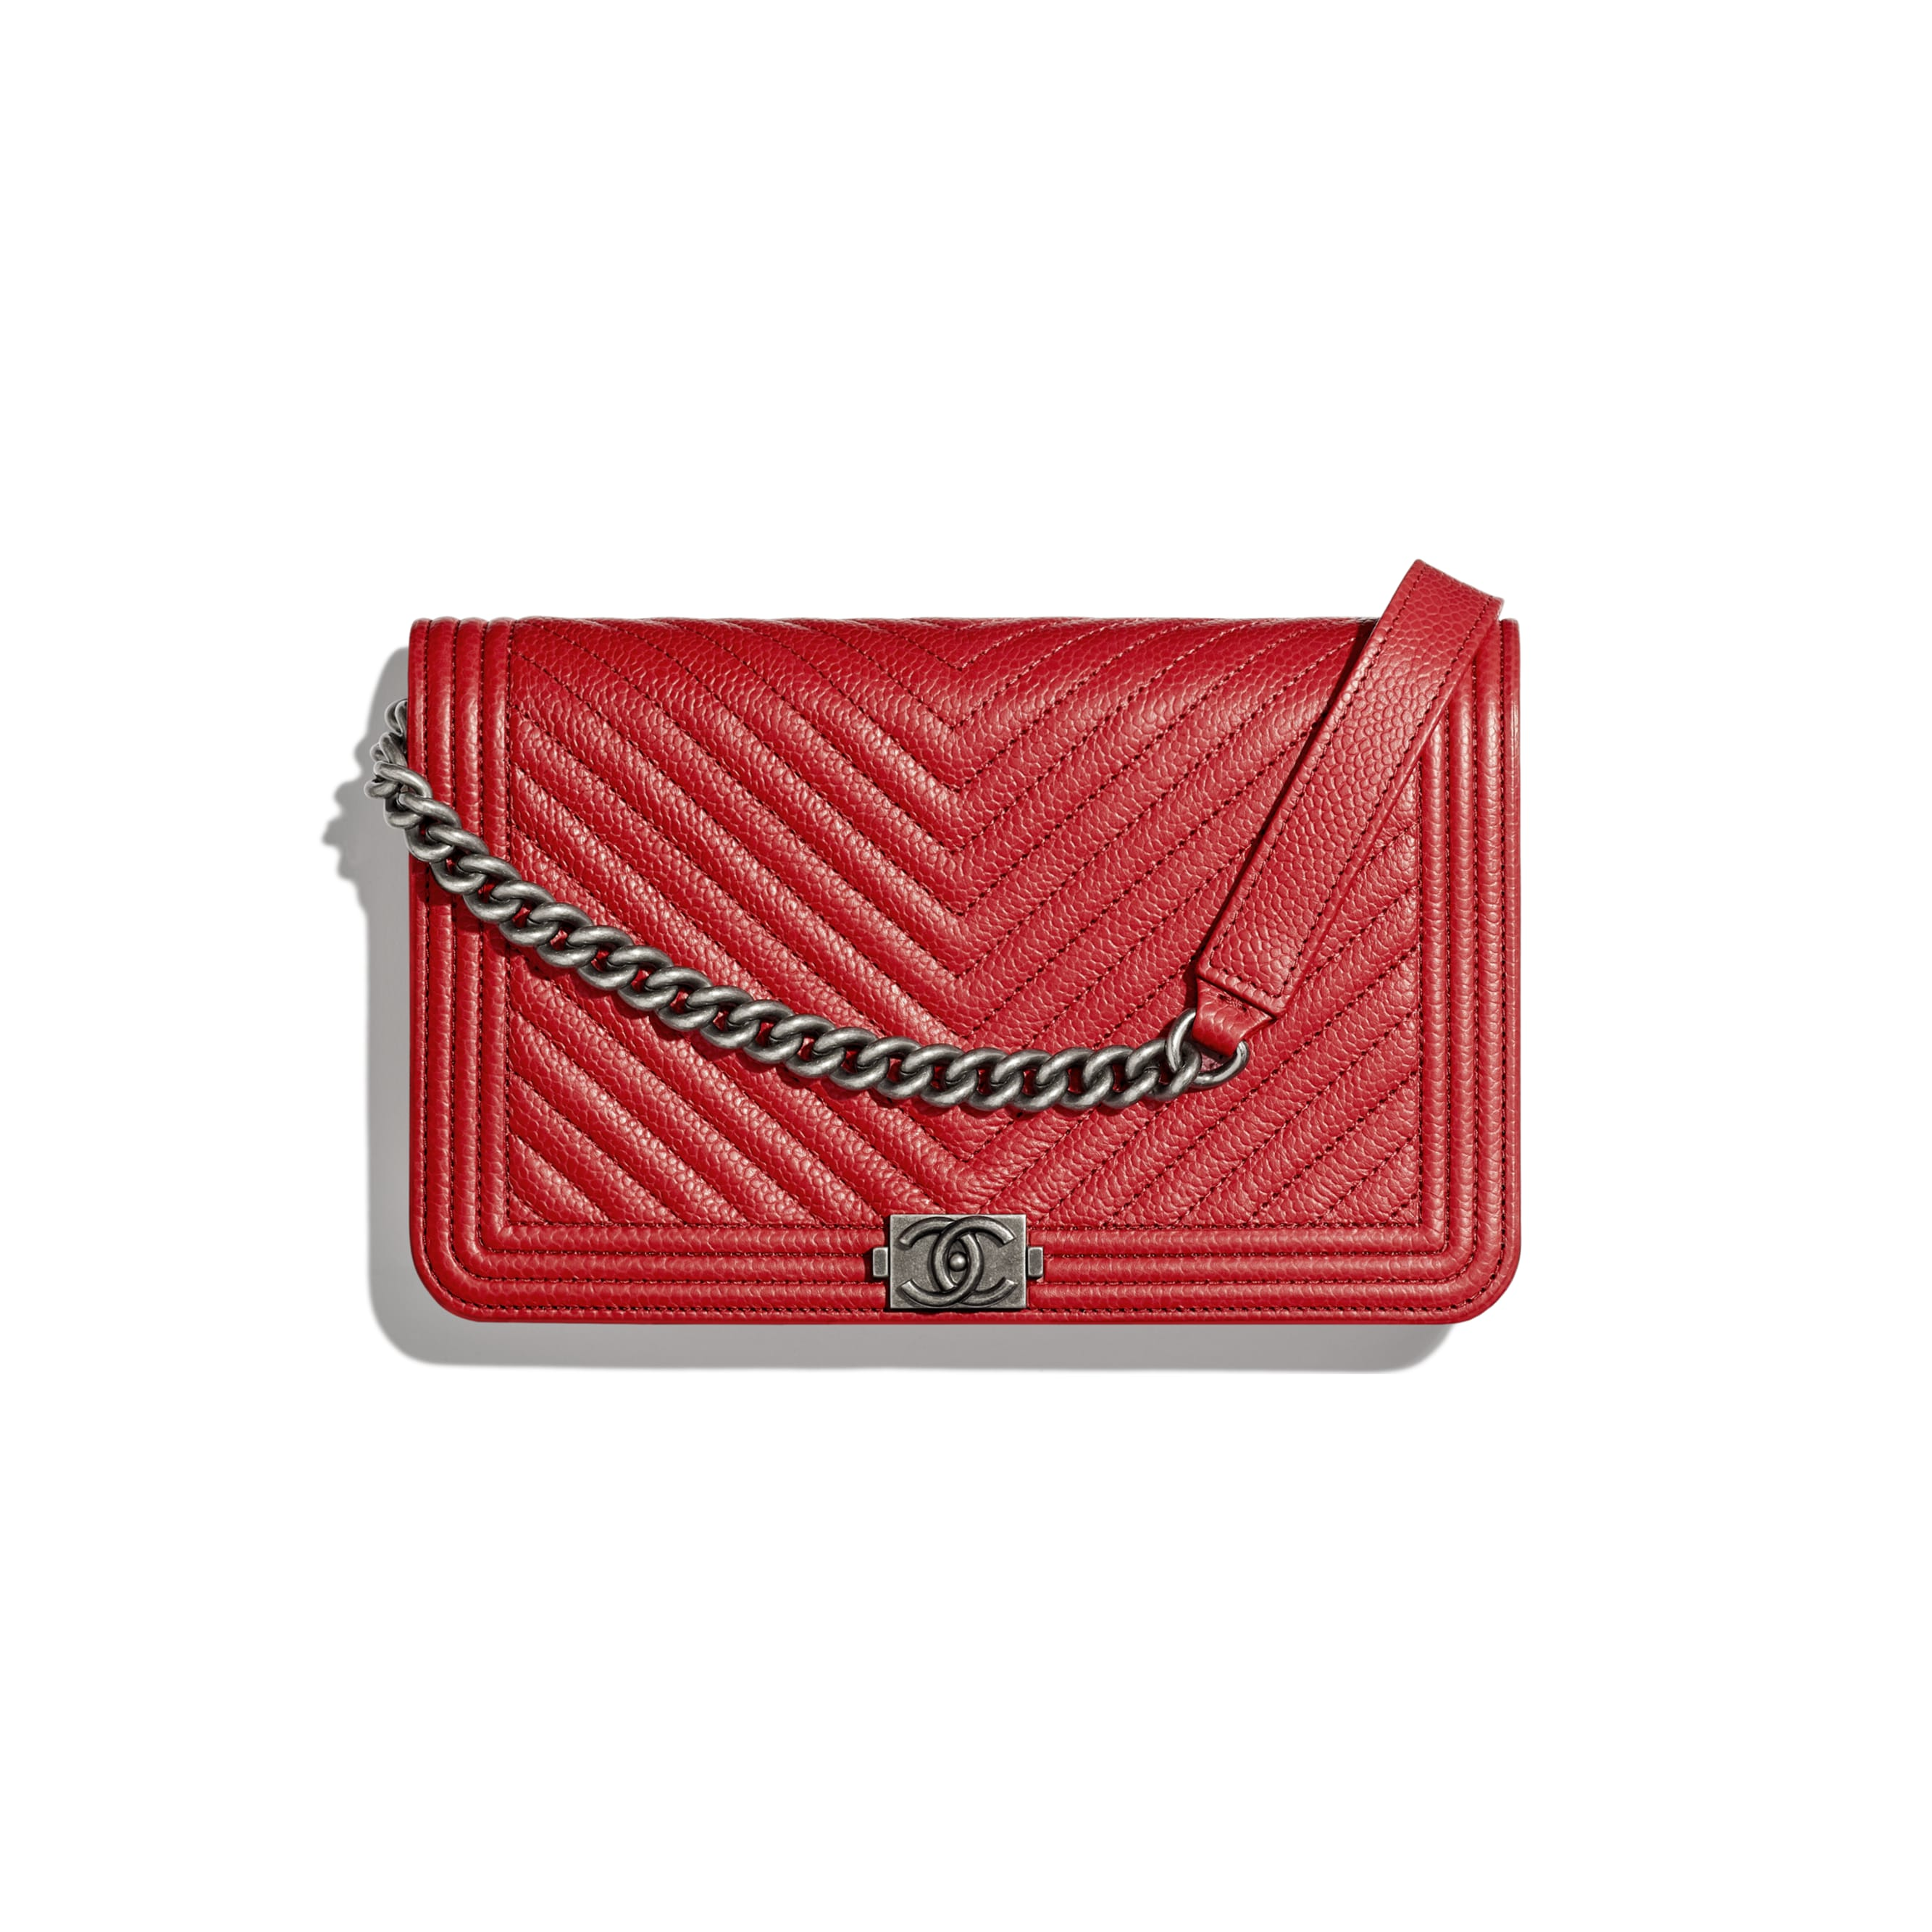 BOY CHANEL Wallet On Chain - Red - Grained Calfskin & Ruthenium-Finish Metal - CHANEL - Default view - see standard sized version